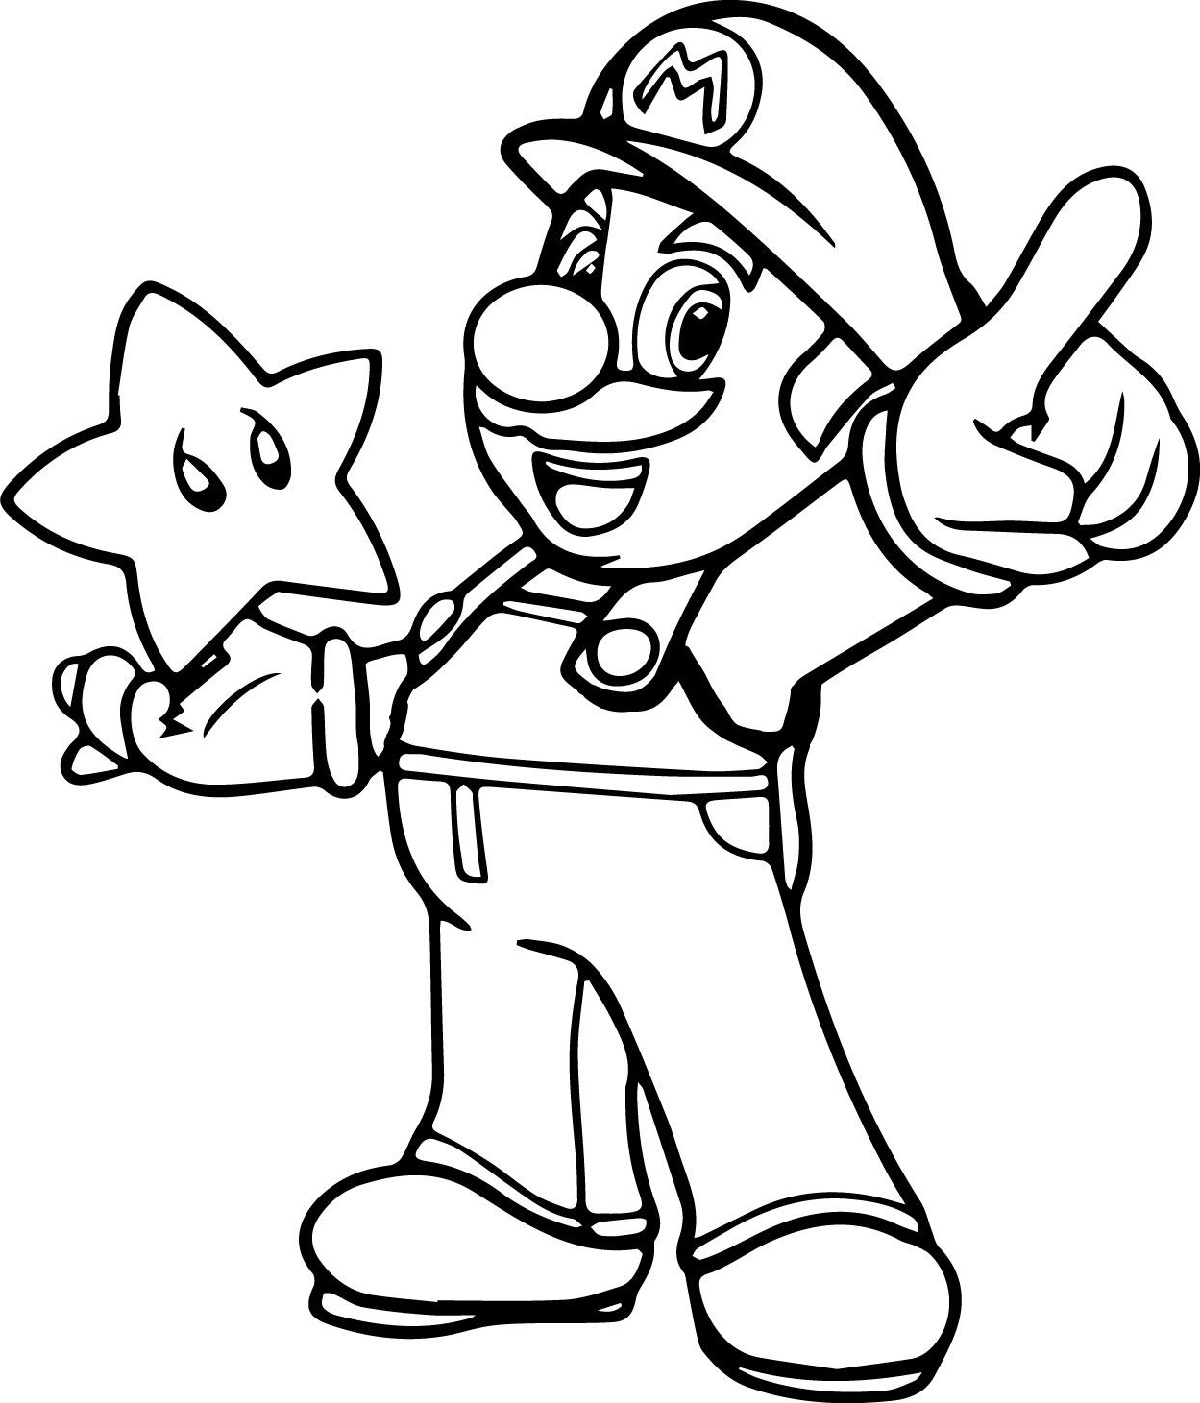 mario maker 2 coloring pages mario maker 2 coloring pages mario maker pages 2 coloring